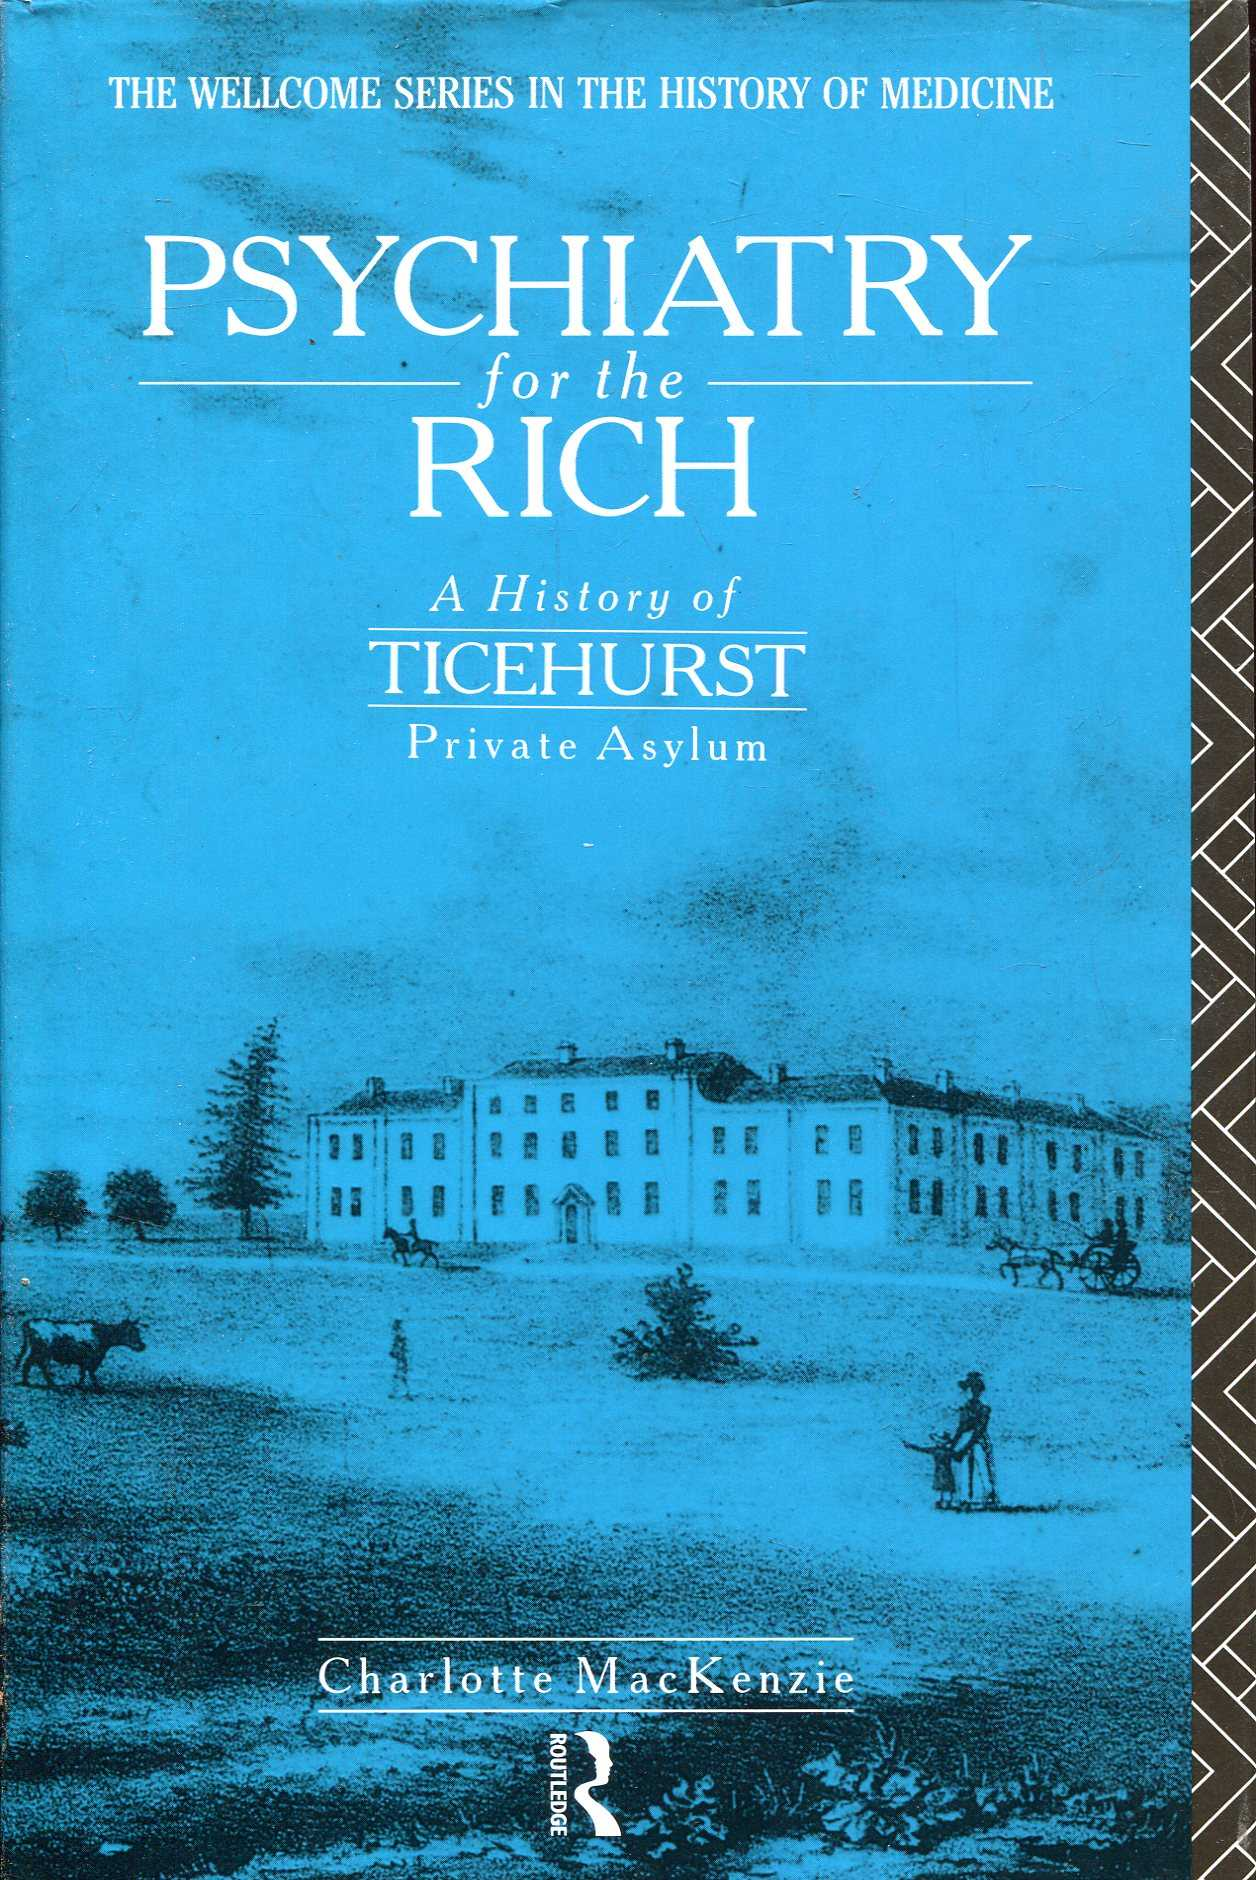 Image for Psychiatry for the Rich: A History of Ticehurst Private Asylum 1792-1917